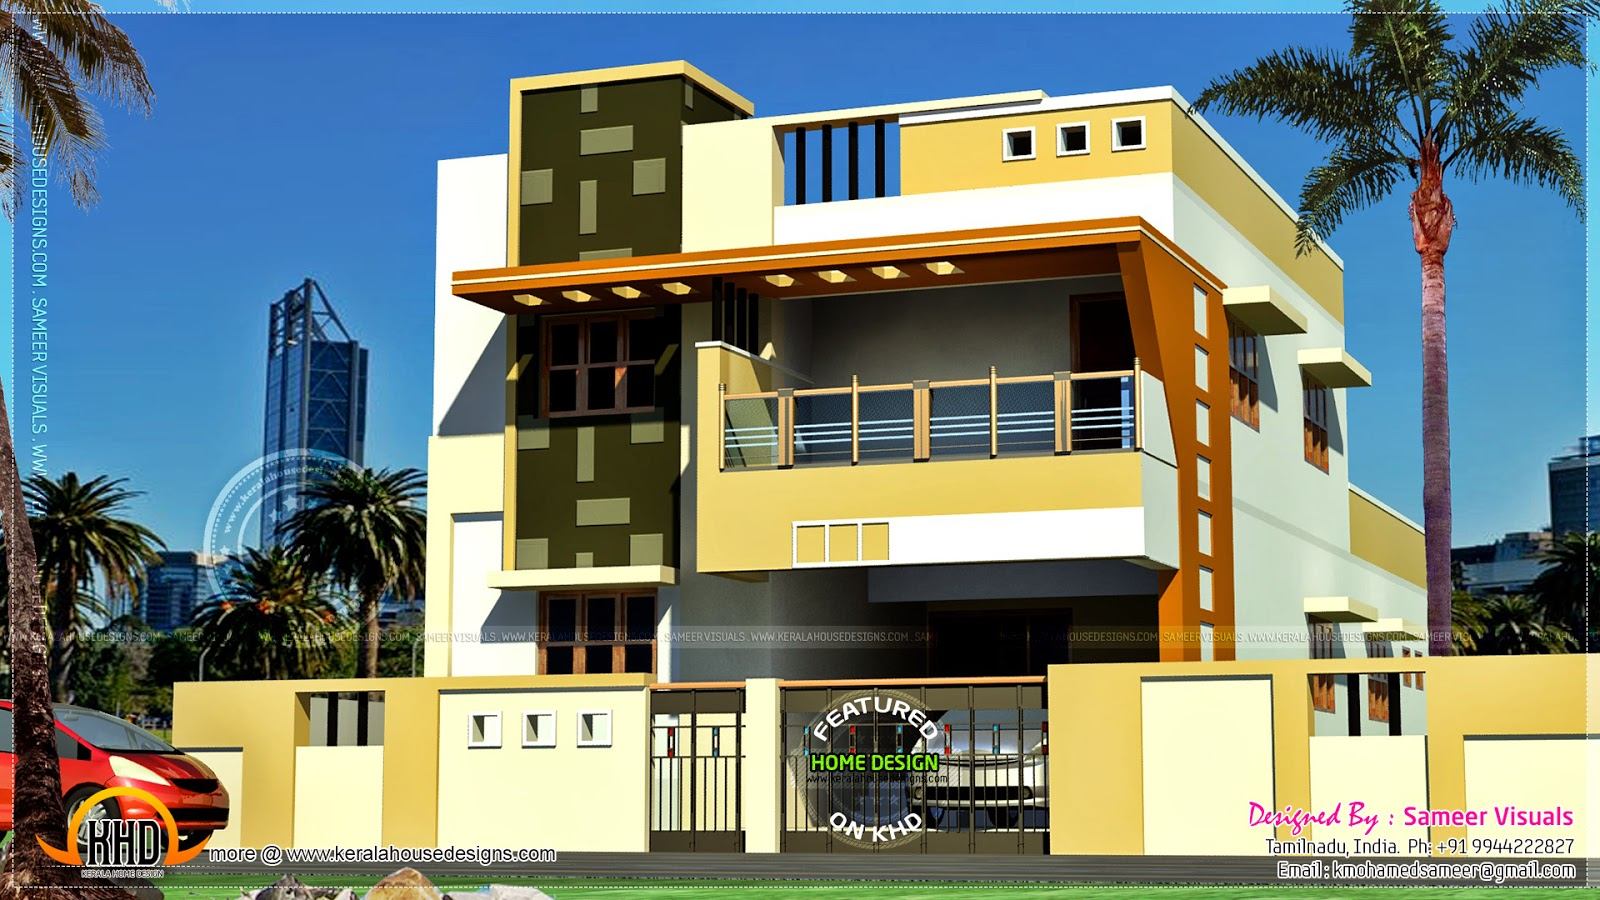 Modern south indian house design kerala home design and for Best house plans indian style